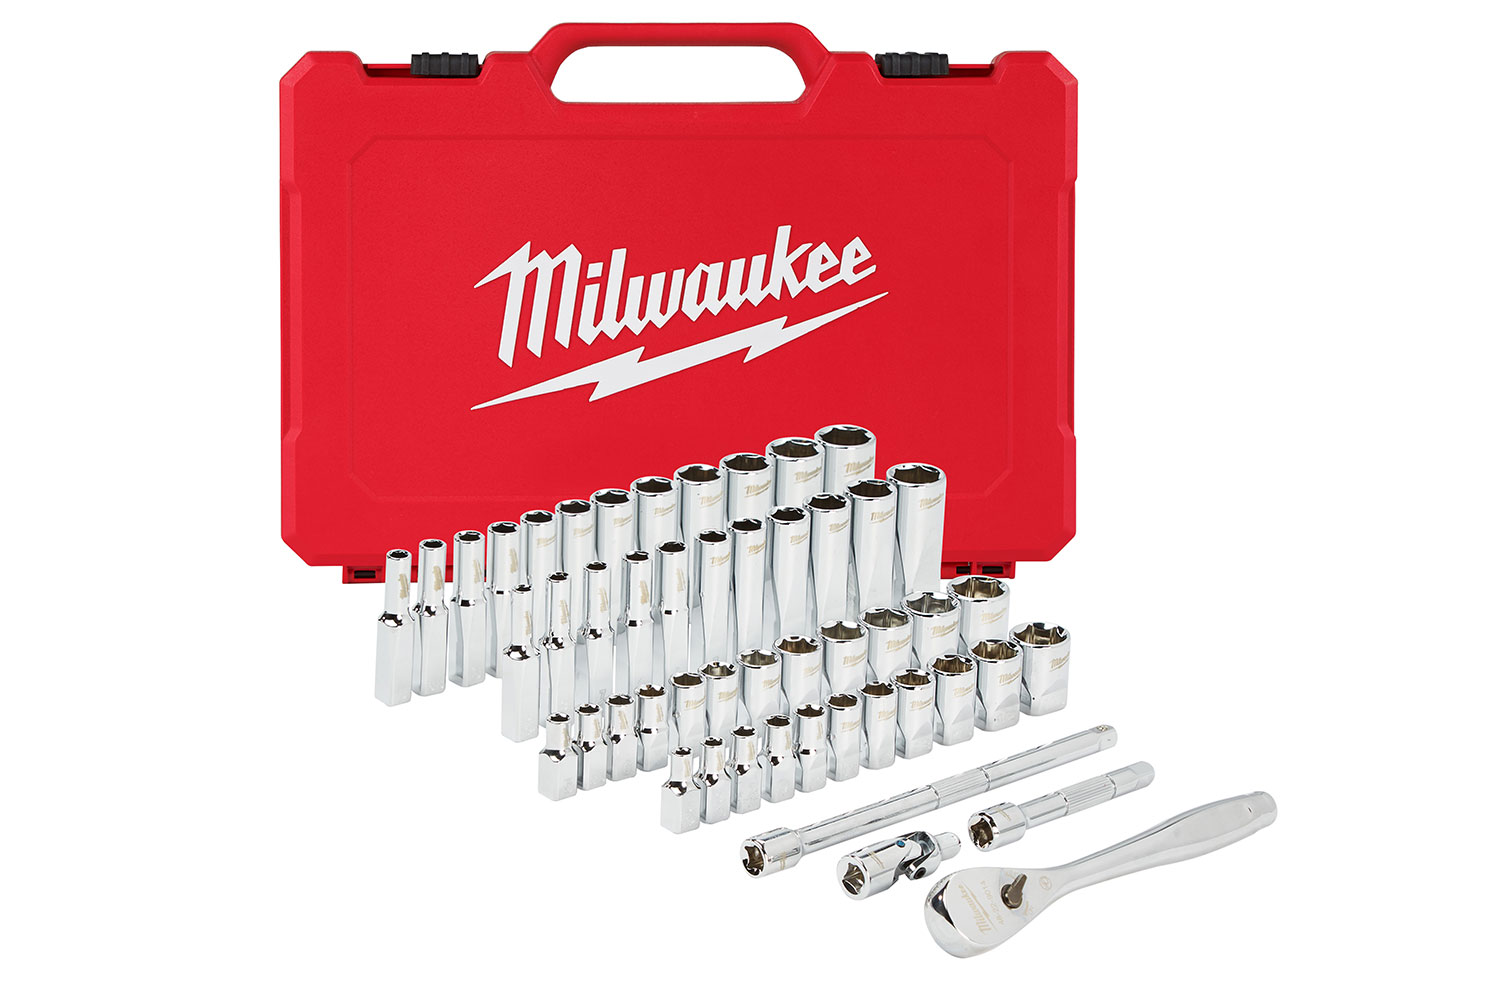 Our Selection of Milwaukee Tools - Kimps